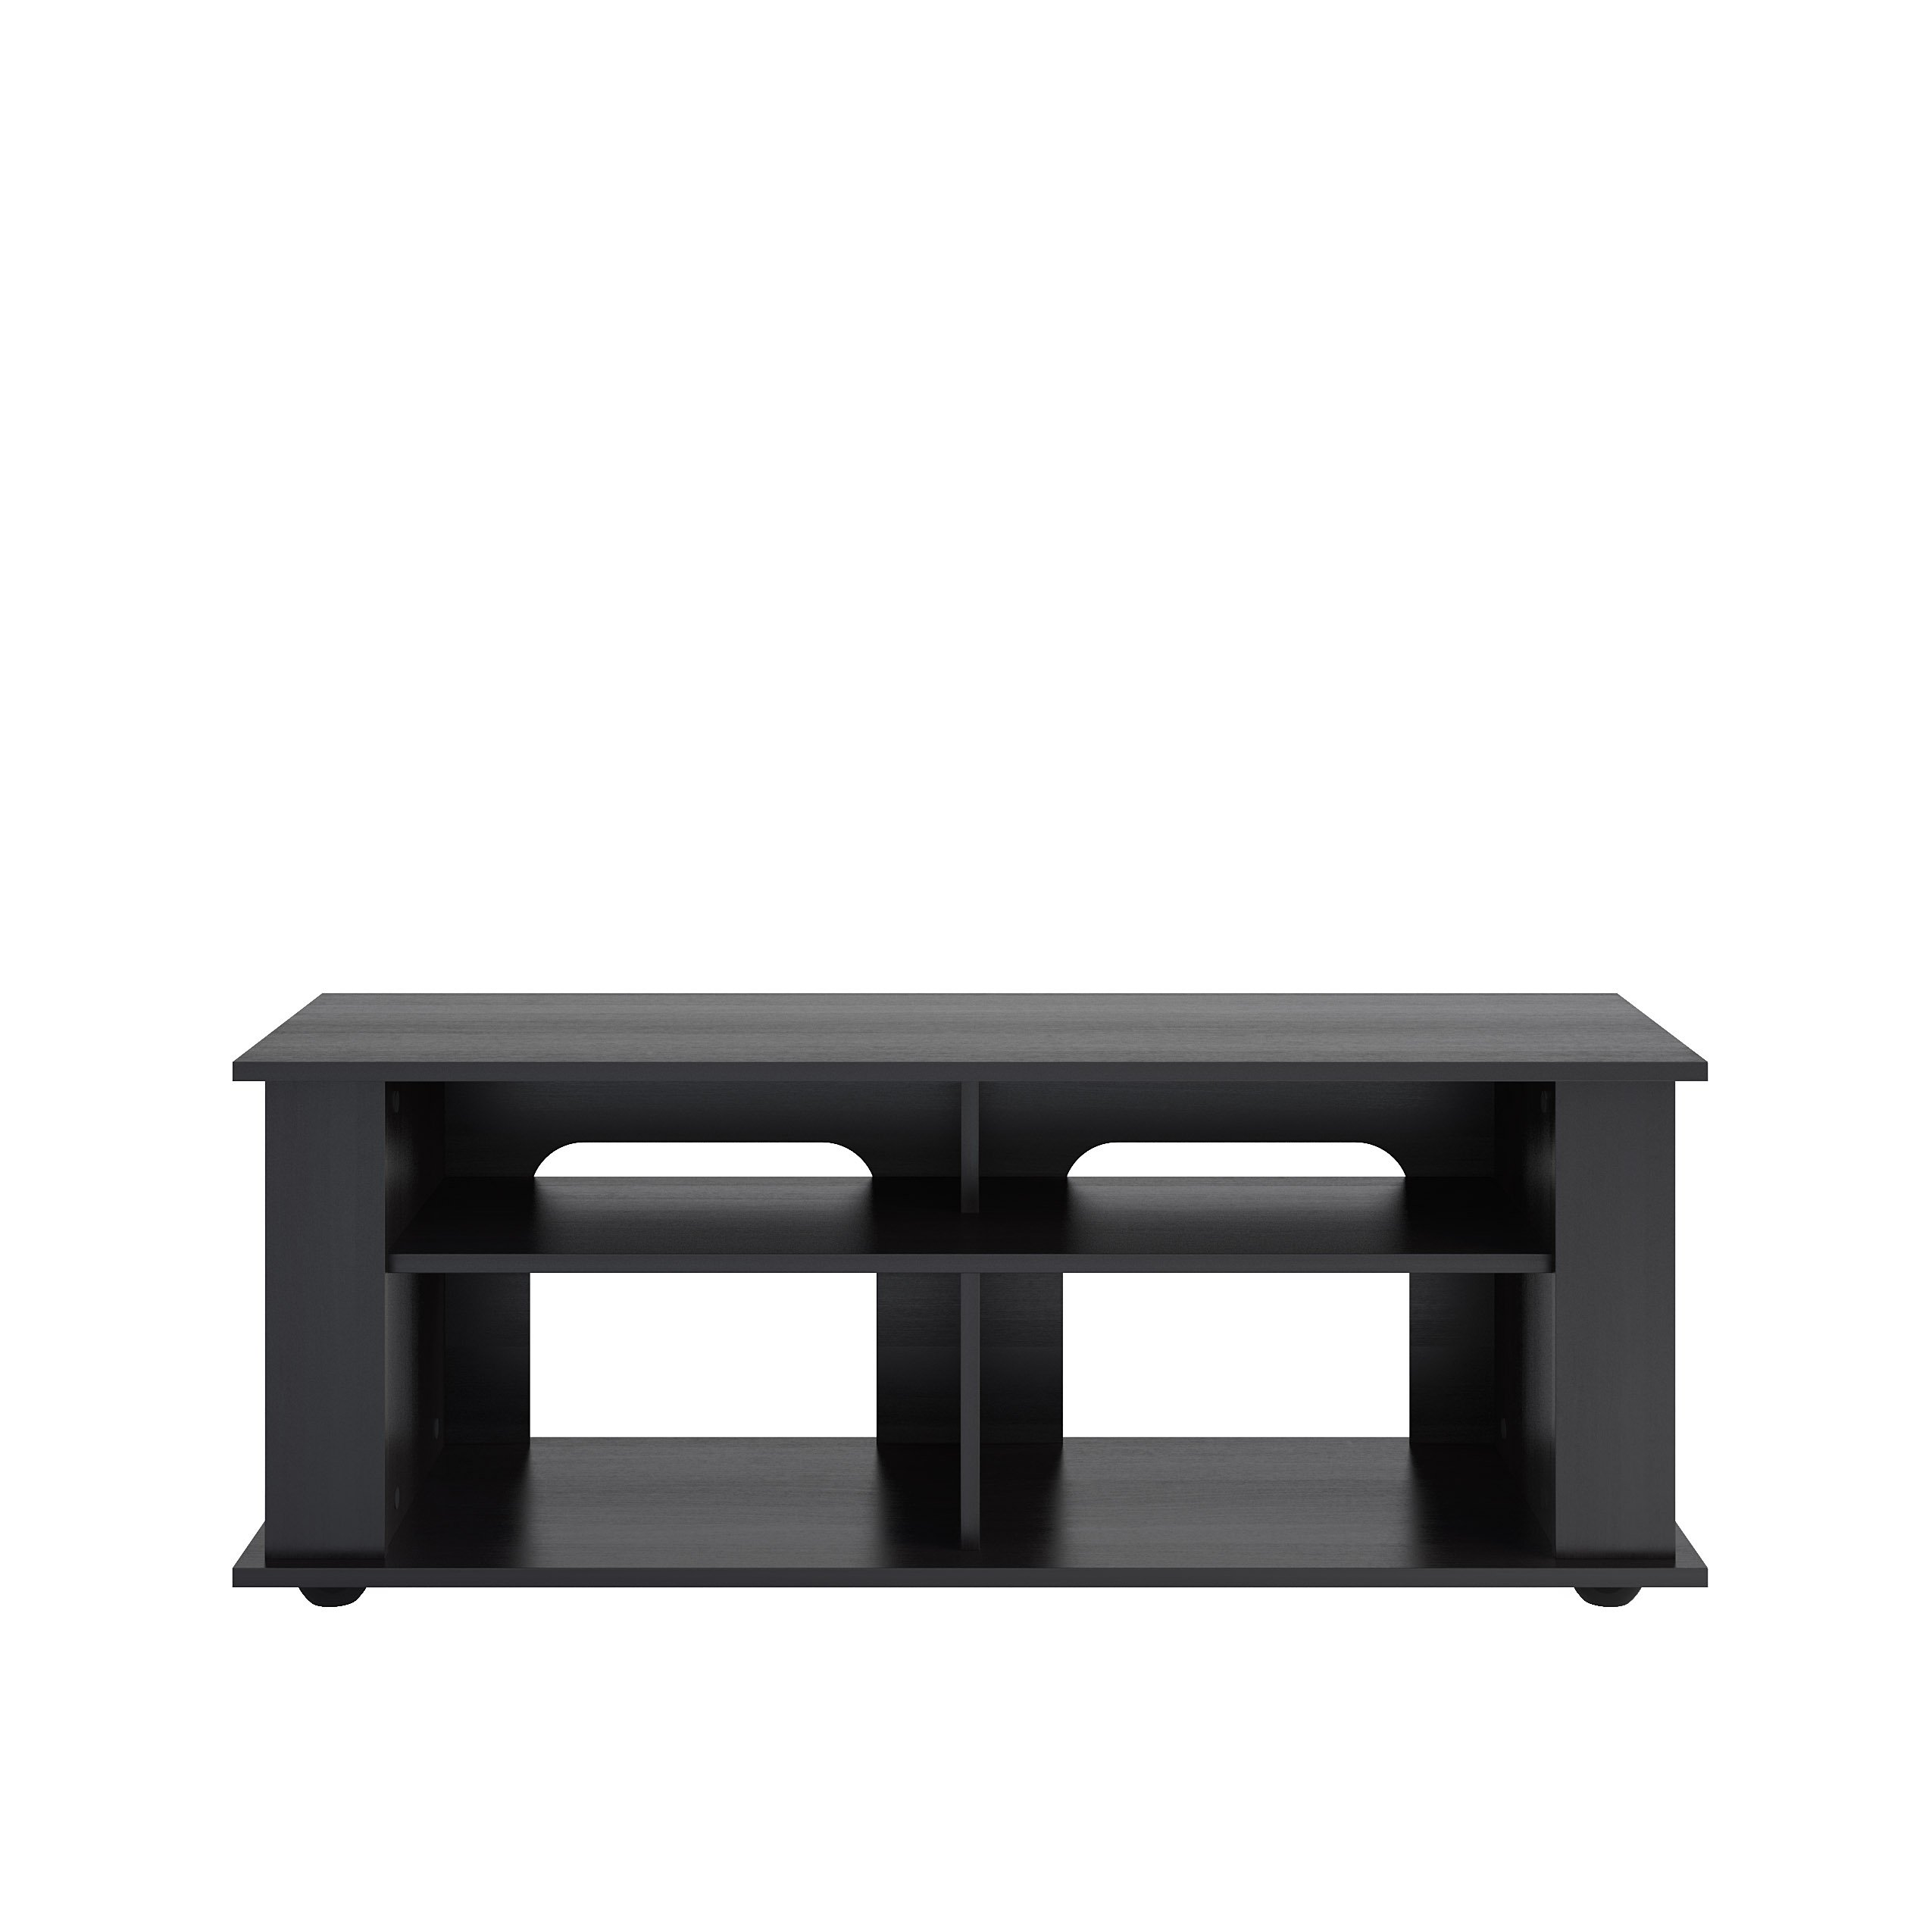 CorLiving TBF-604-B Bakersfield Ravenwood TV/Component Stand, Black by CorLiving (Image #5)